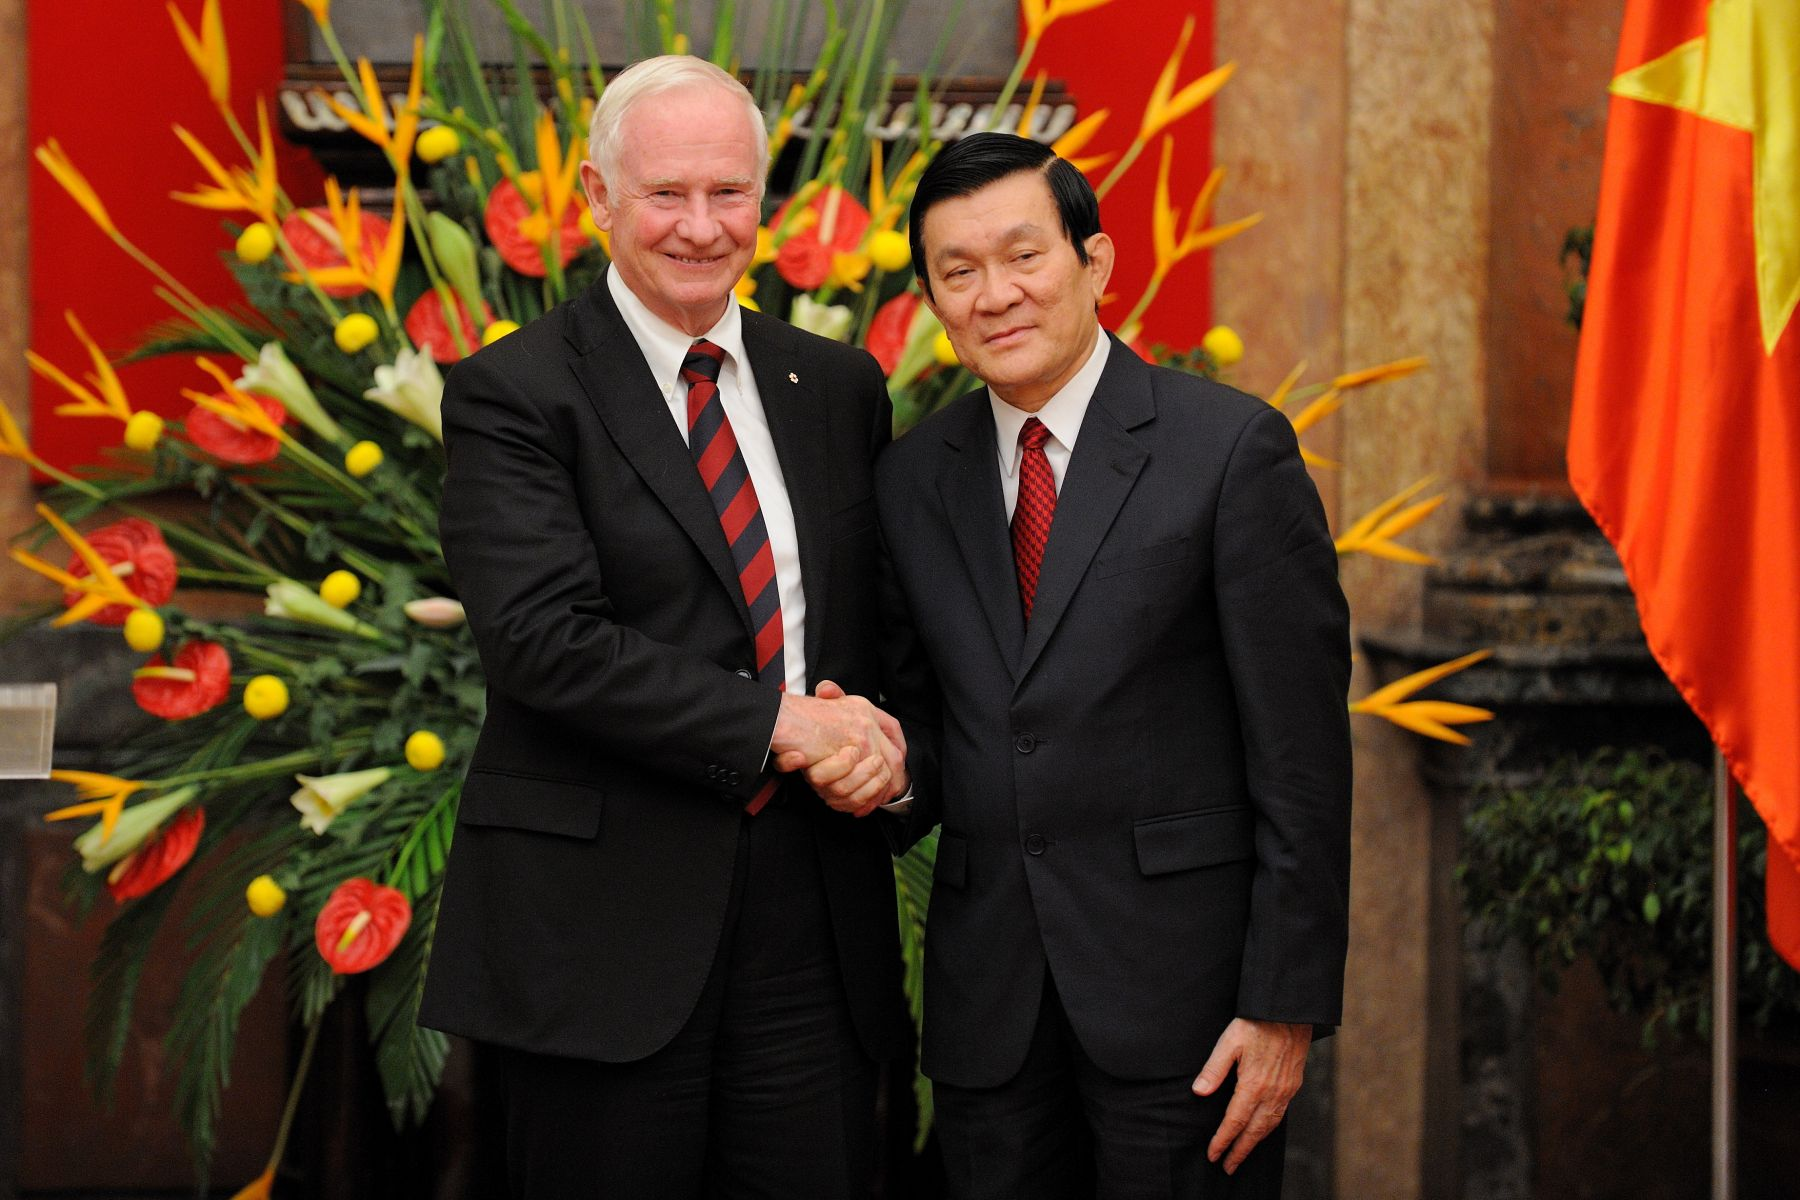 Following the ceremony, the Governor General met with the President of the Socialist Republic of Vietnam. Both delivered statements to reporters gathered inside the Palace.